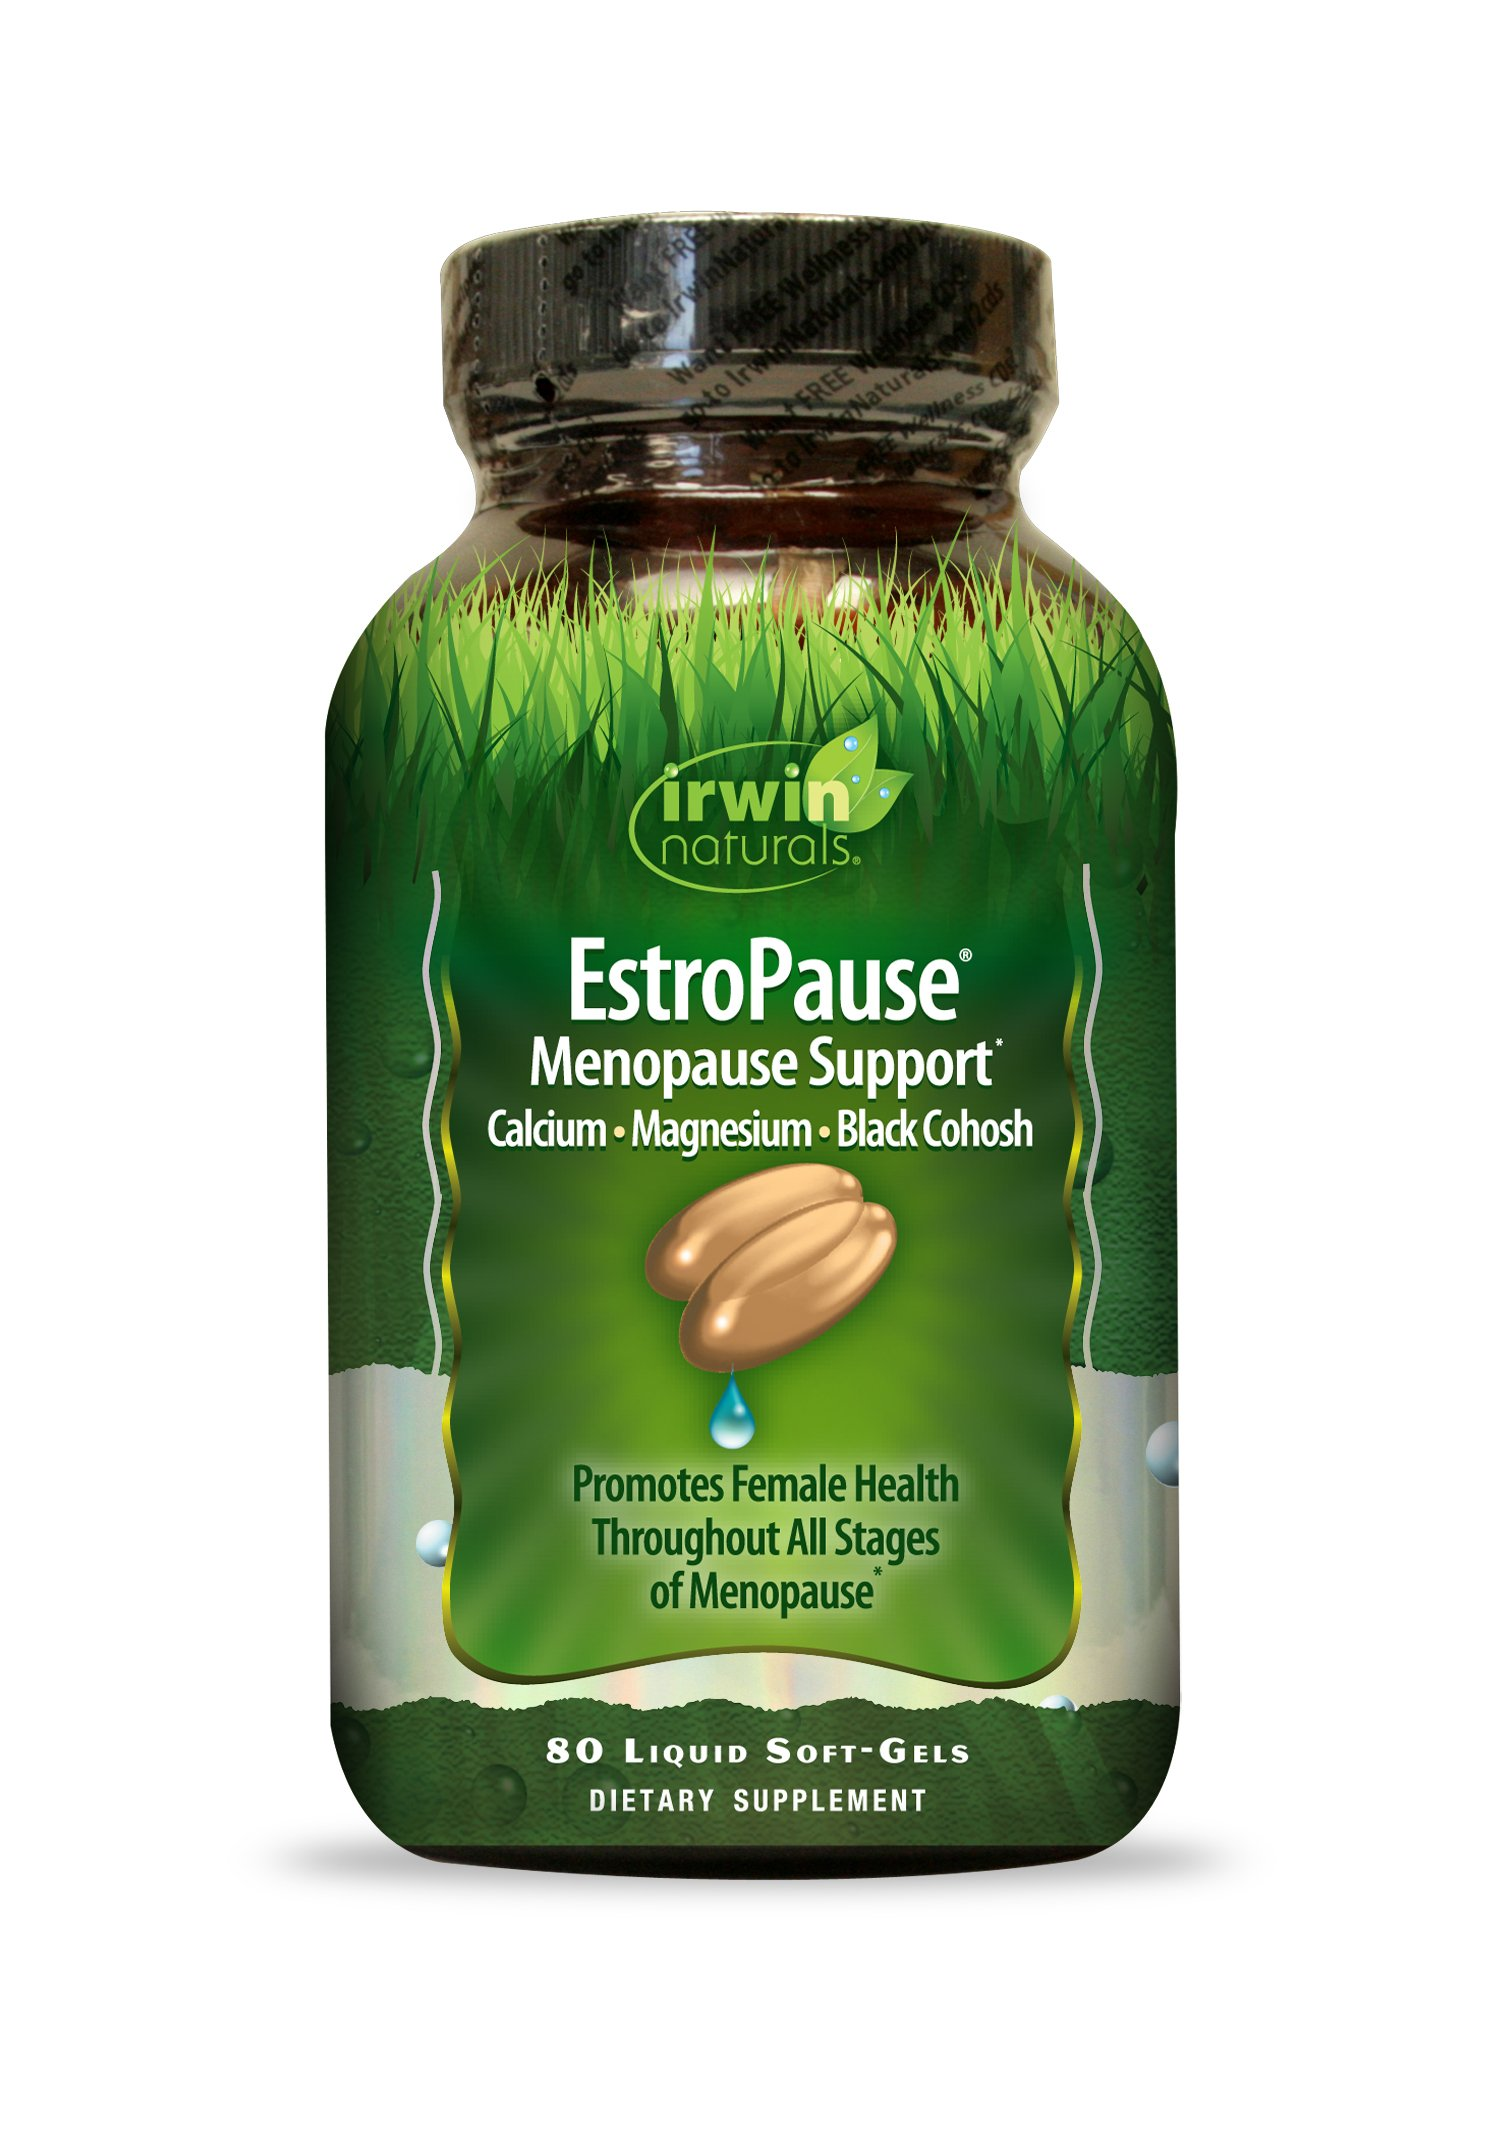 Irwin Naturals Estropause Menopause Support 80 Count